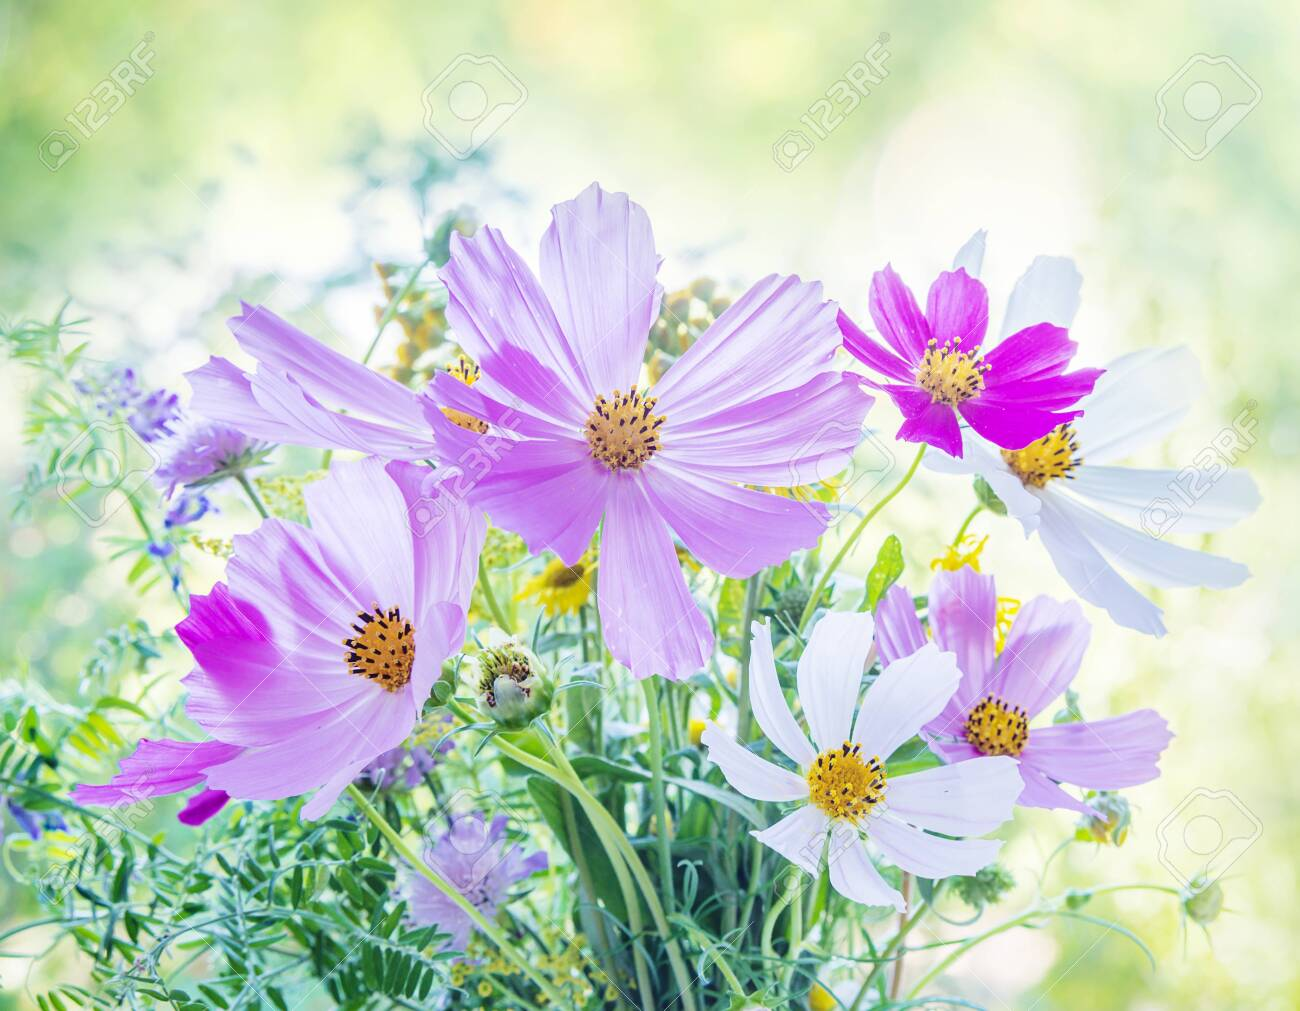 Beautiful multicolored bouquet of wildflowers on a blurred natural background - 124742817